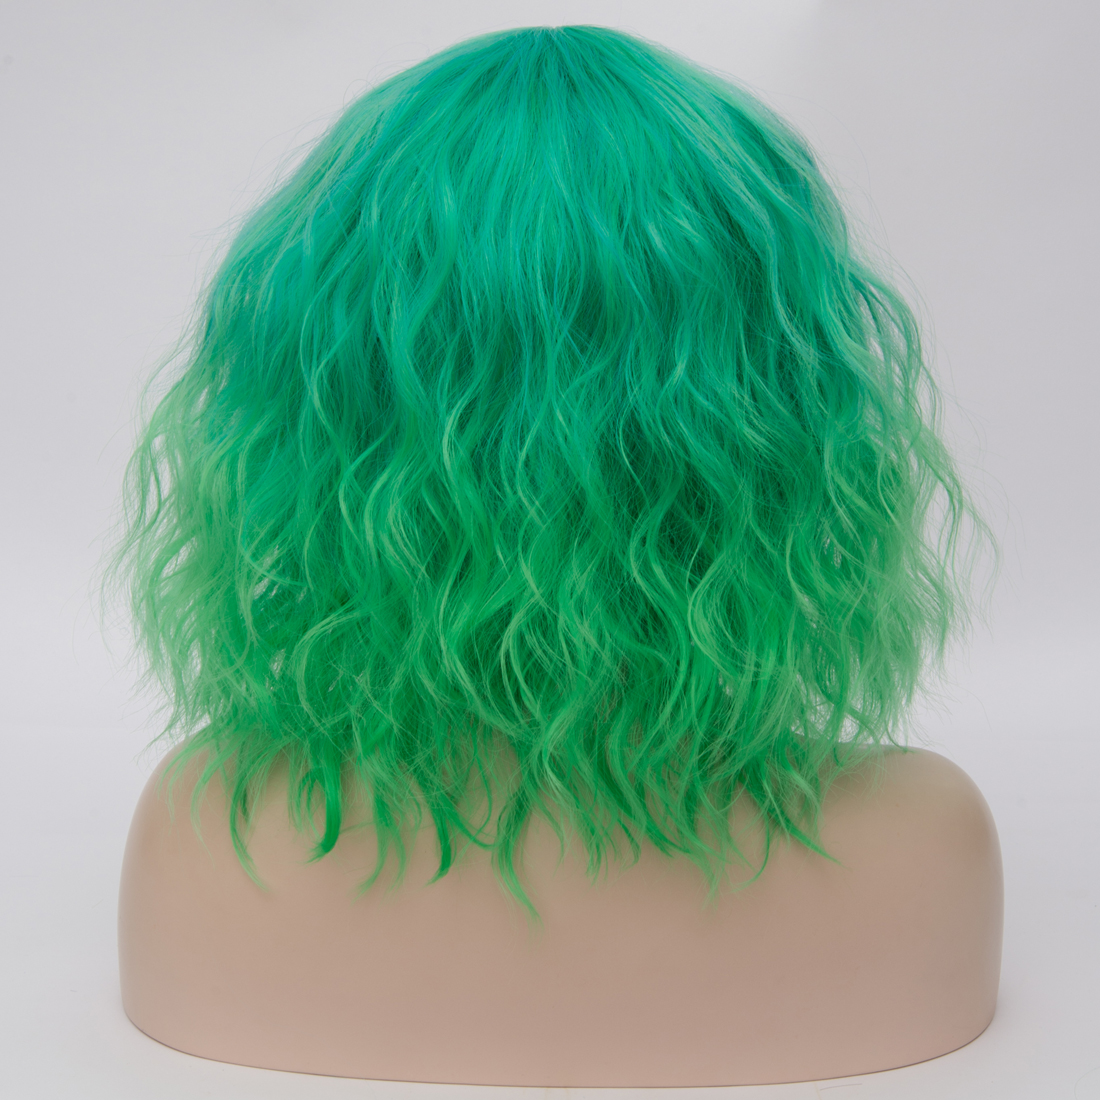 Hbc3b2bc1cb8448be997c115e0cf59d1bu - Similler Short Synthetic Wig for Women Cosplay Curly Hair Heat Resistance Ombre Color Blue Purple Pink Green Orange Two Tones